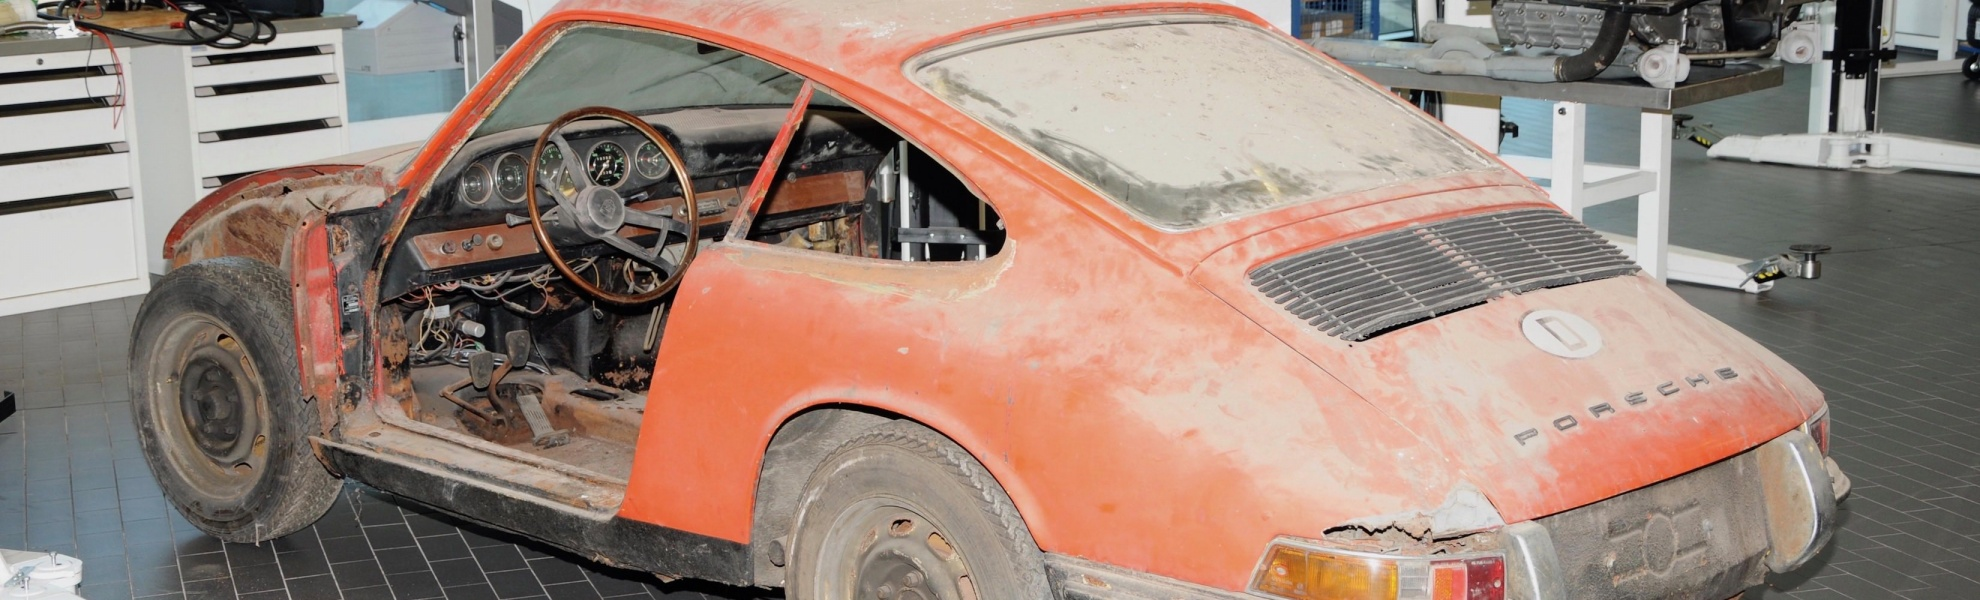 high_911_barn_find_2017_porsche_ag.jpg